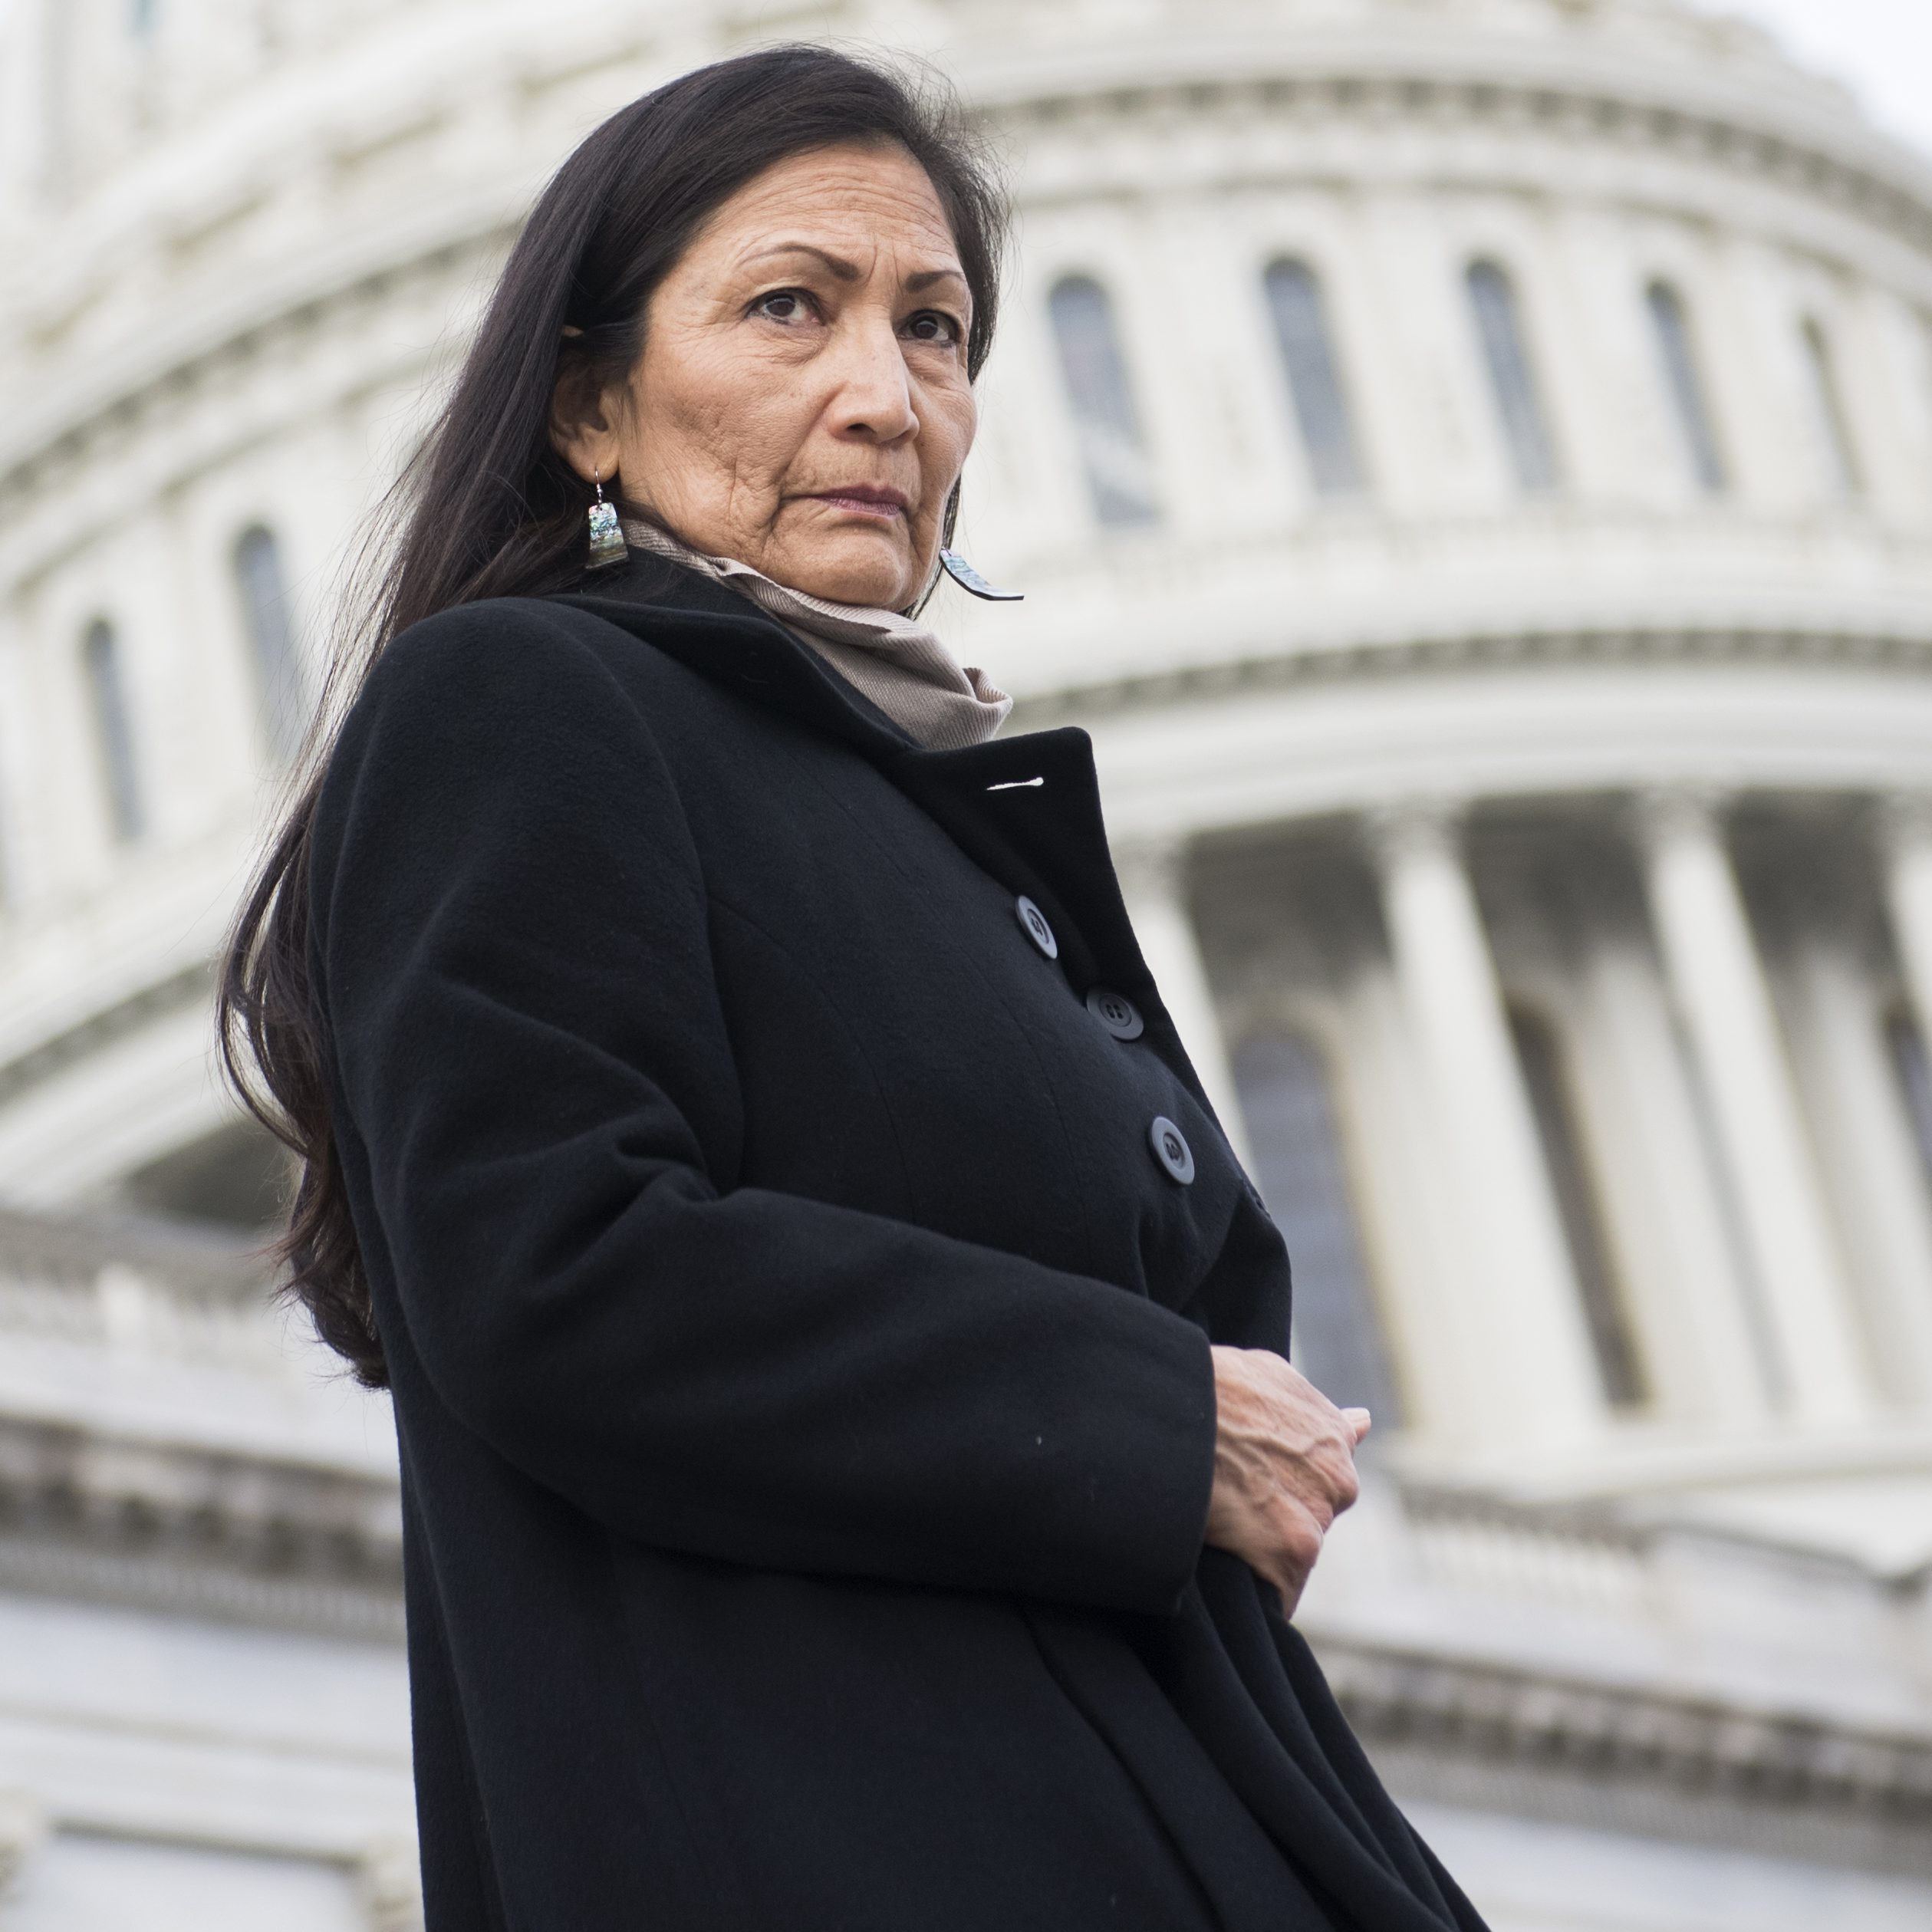 Rep. Deb Haaland, D-N.M., on the Capitol steps in Washington, D.C. on Jan. 4, 2019.